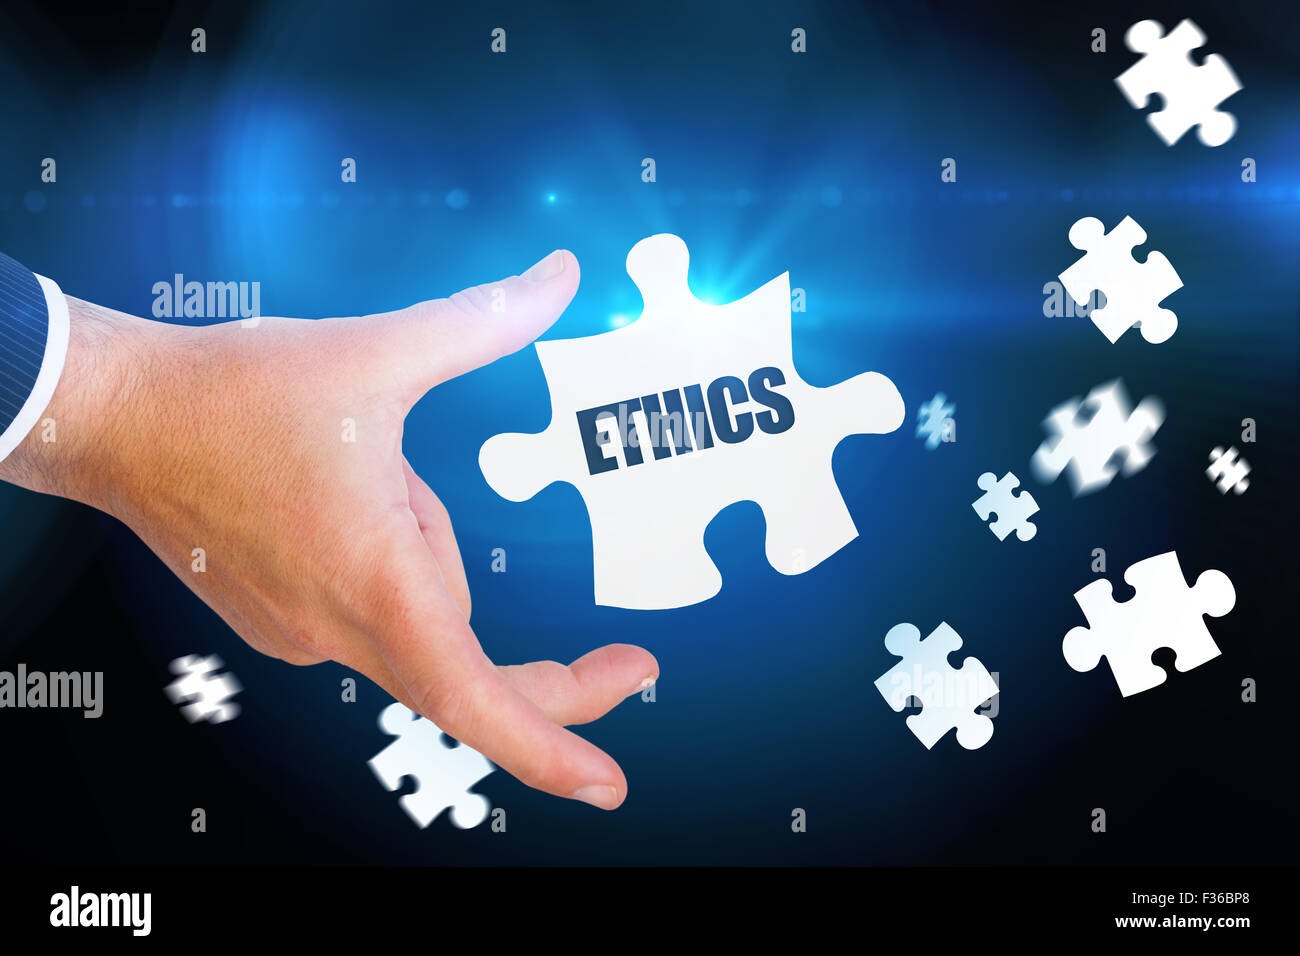 Ethics against blue background with vignette - Stock Image